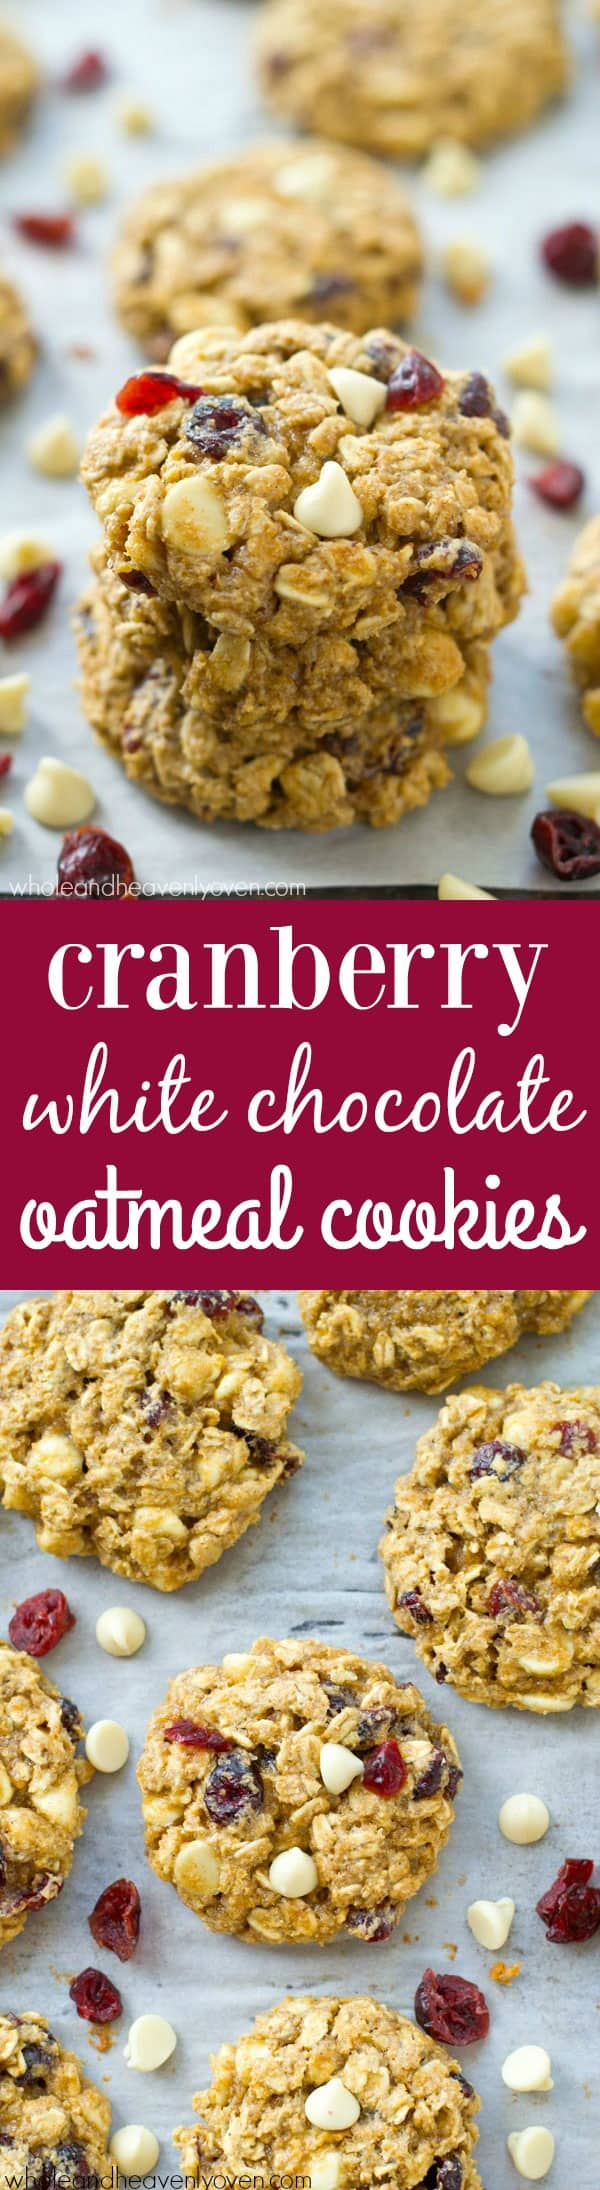 Soft, chewy, and loaded with white chocolate and cranberries, these oatmeal cookies are quick to whip up and the dough can even be made ahead of time for whenever that cookie-craving hits! @WholeHeavenly